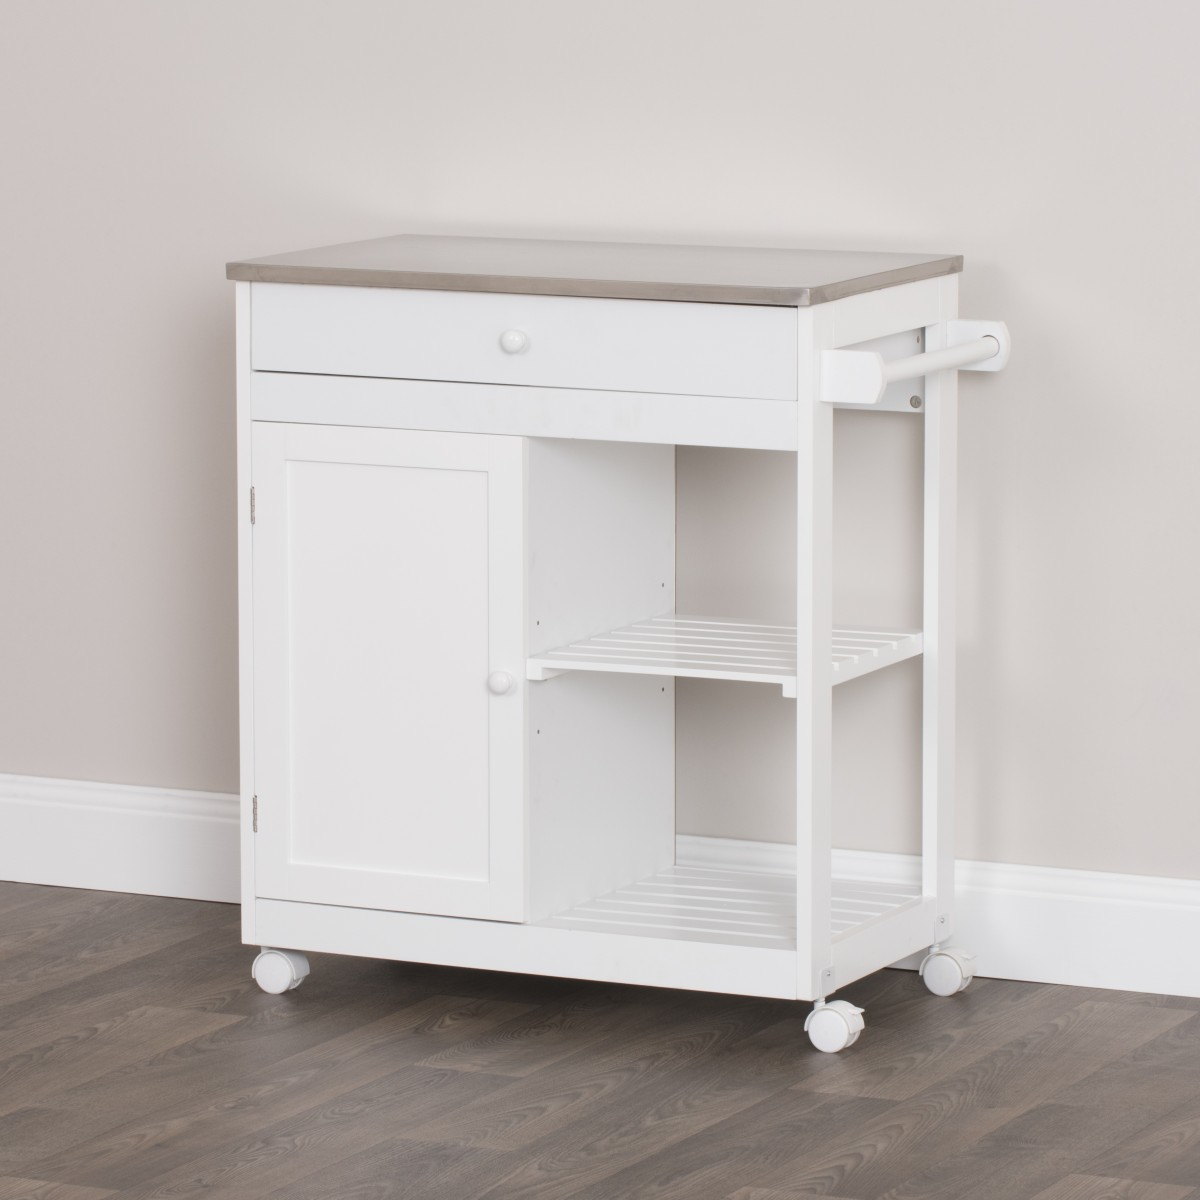 Kitchen Trolley With Stainless Steel Counter Top